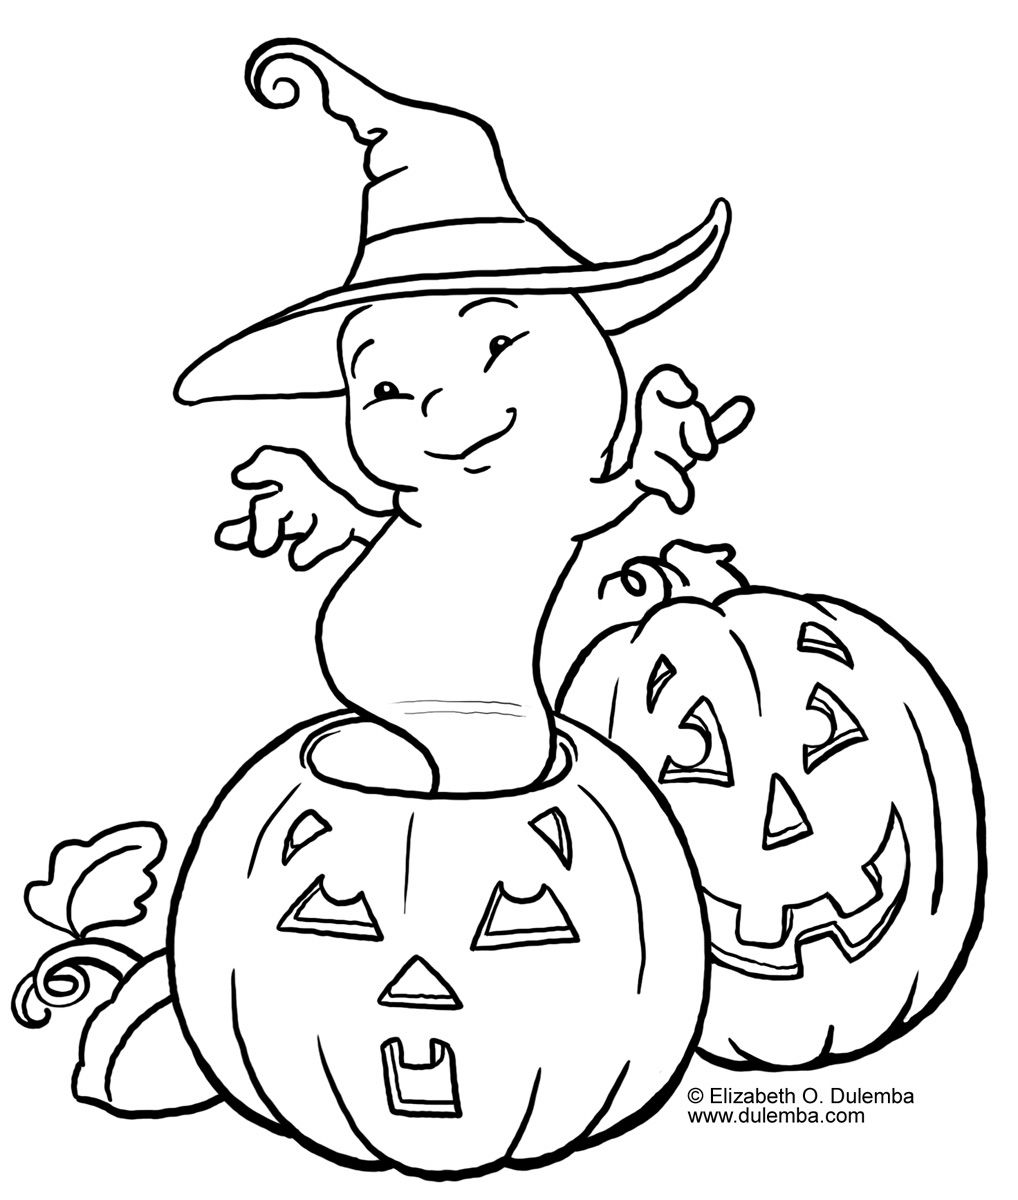 Top 10 Free Printable Halloween Pumpkin Coloring Pages Online